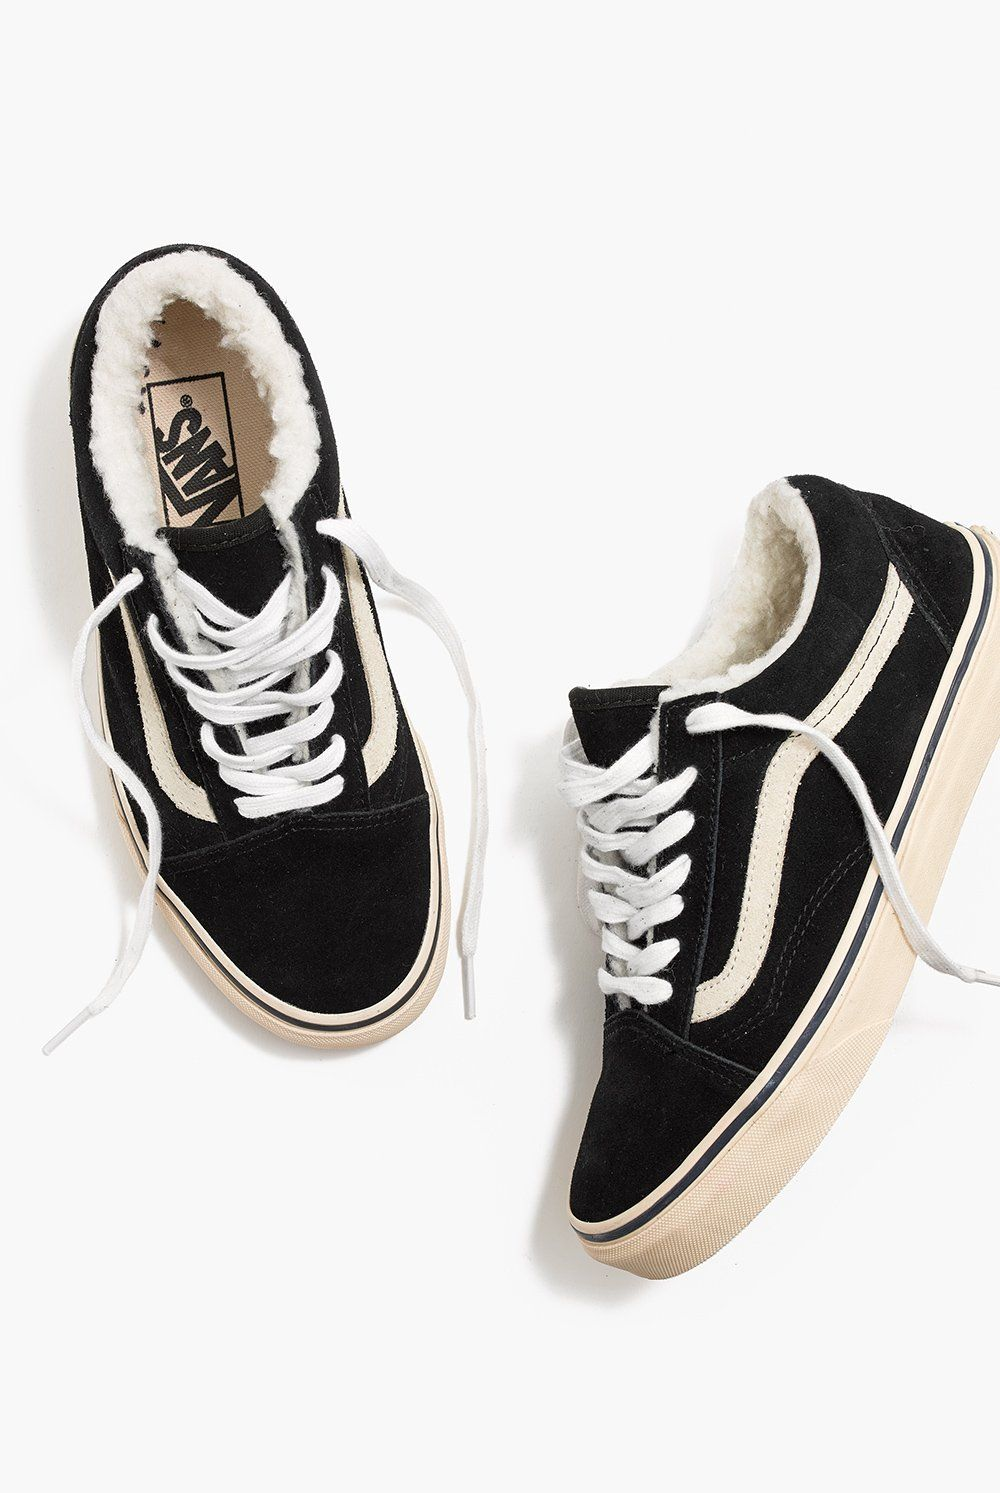 Madewell x Vans® Unisex Old Skool Sneakers in Suede and Sherpa